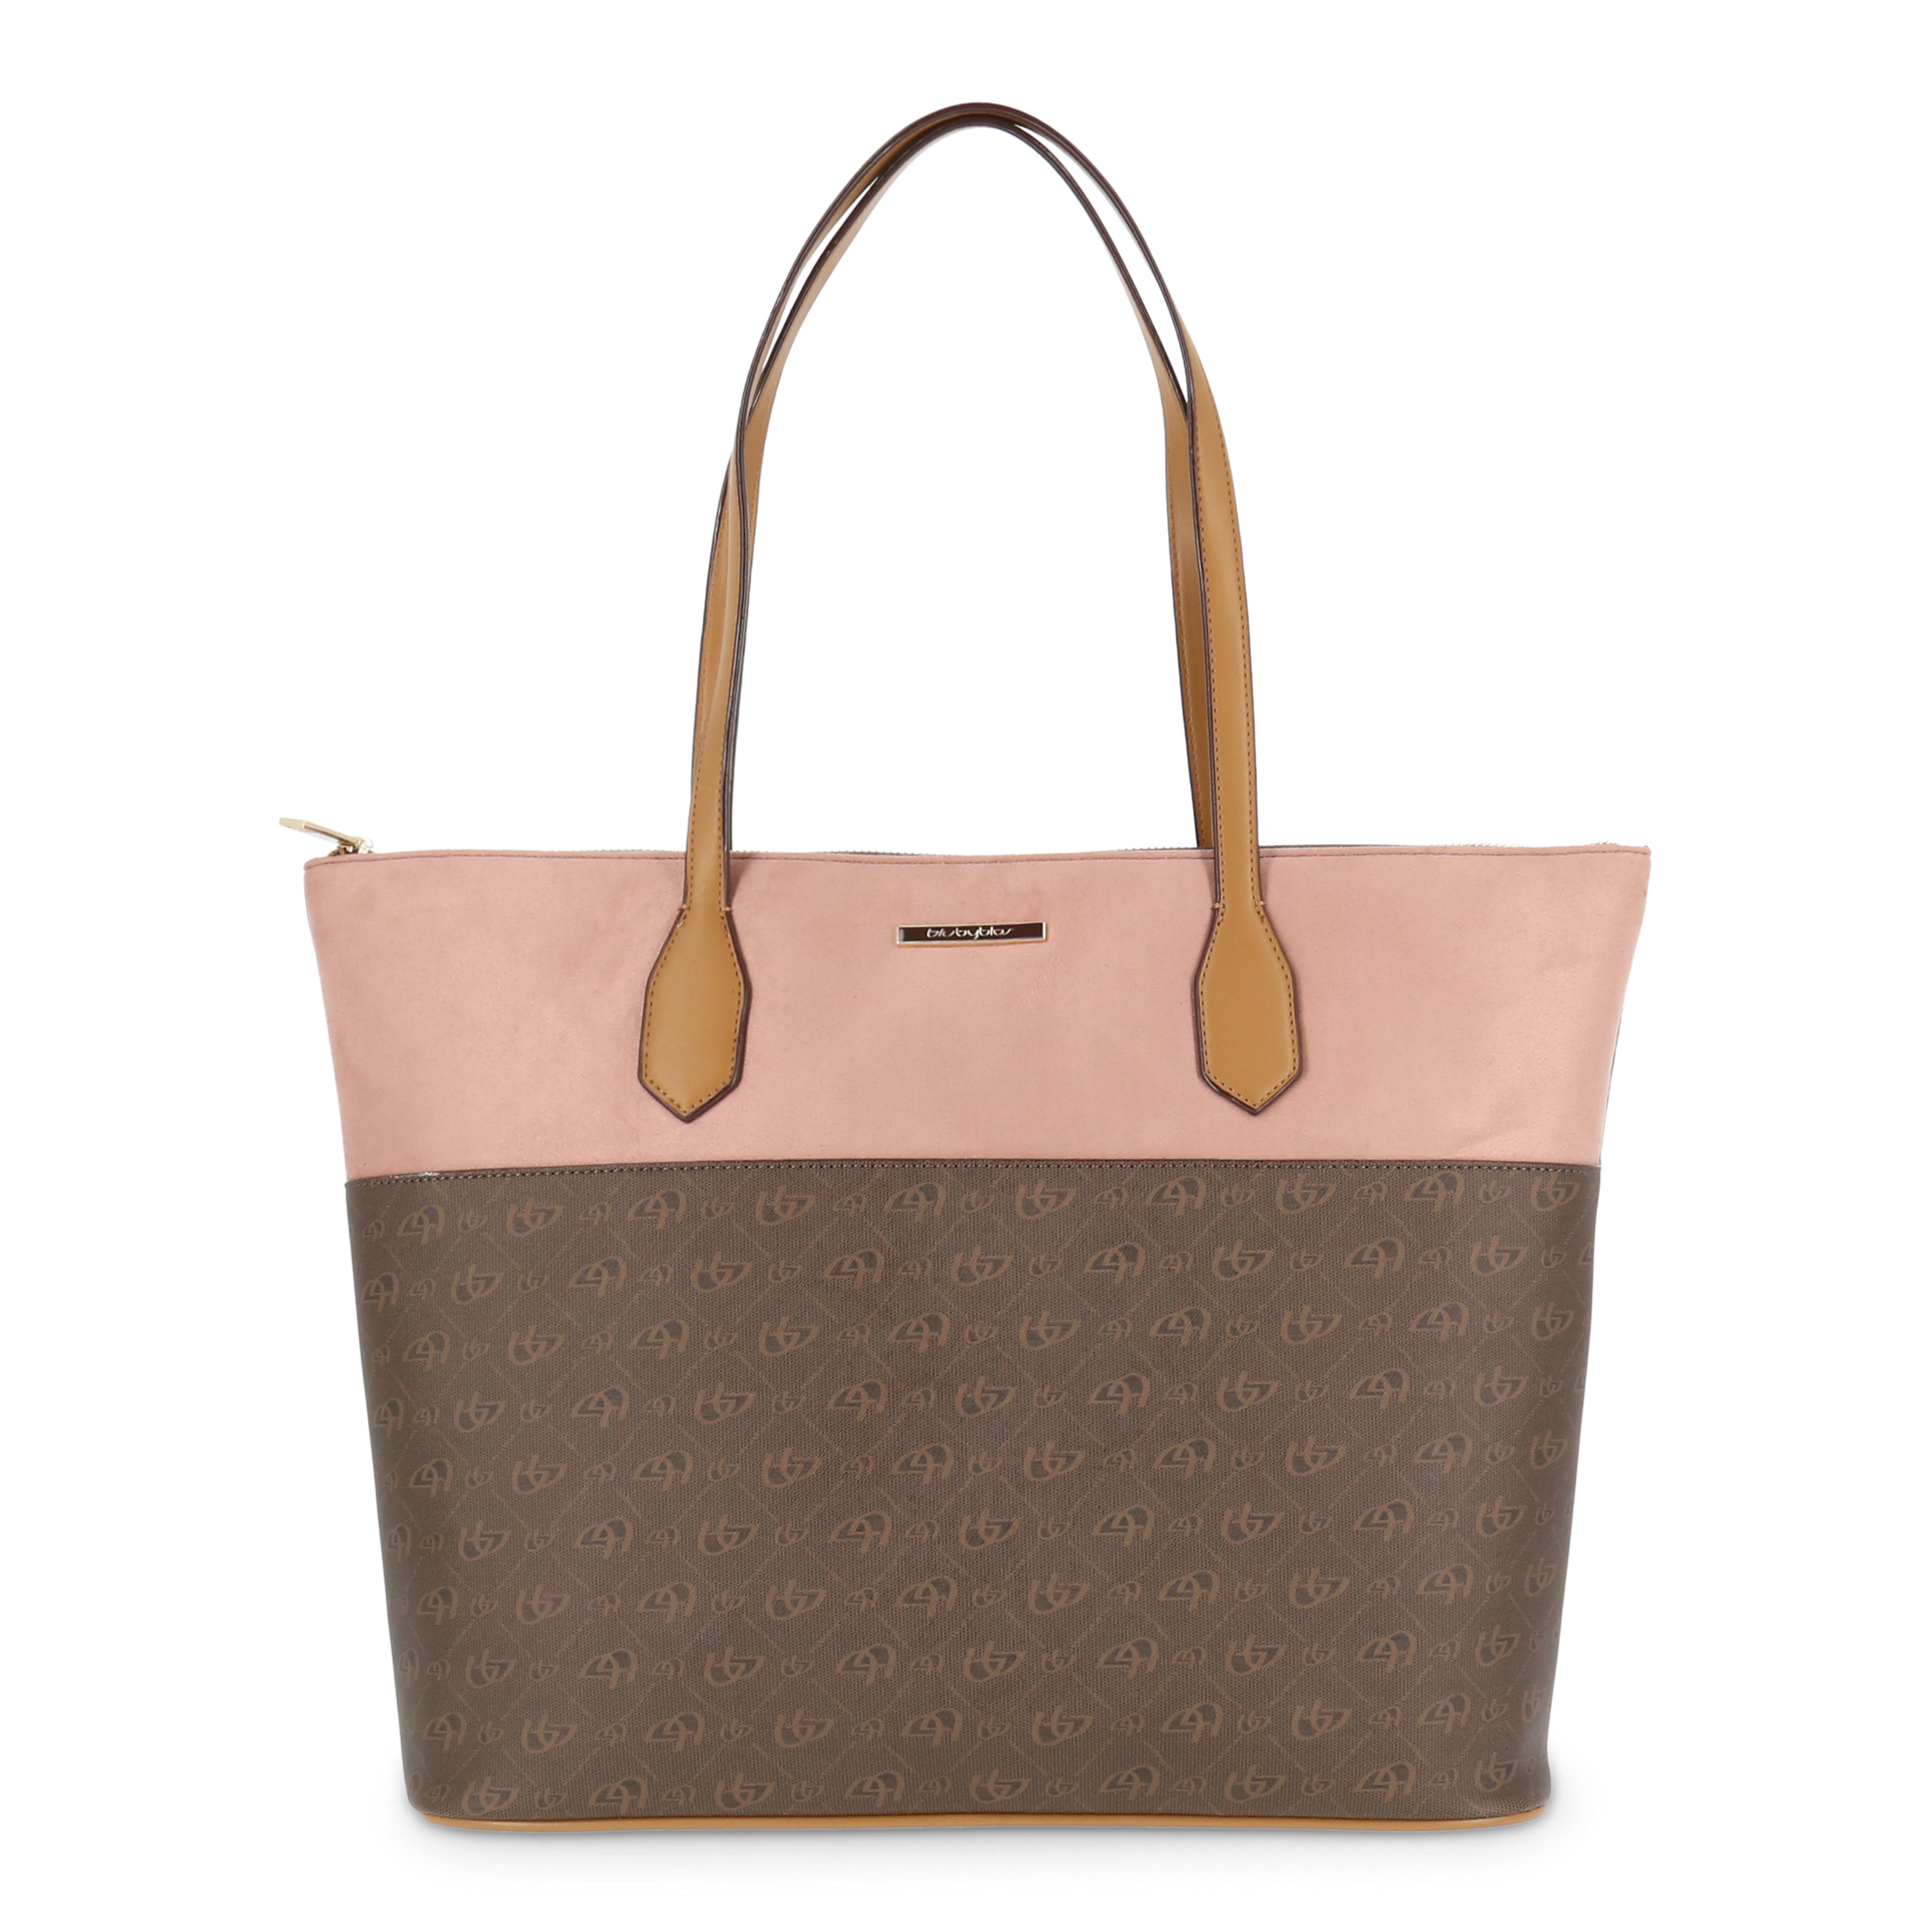 Shopping bag Blu Byblos HOLDME_685753 Donna Marrone 95109